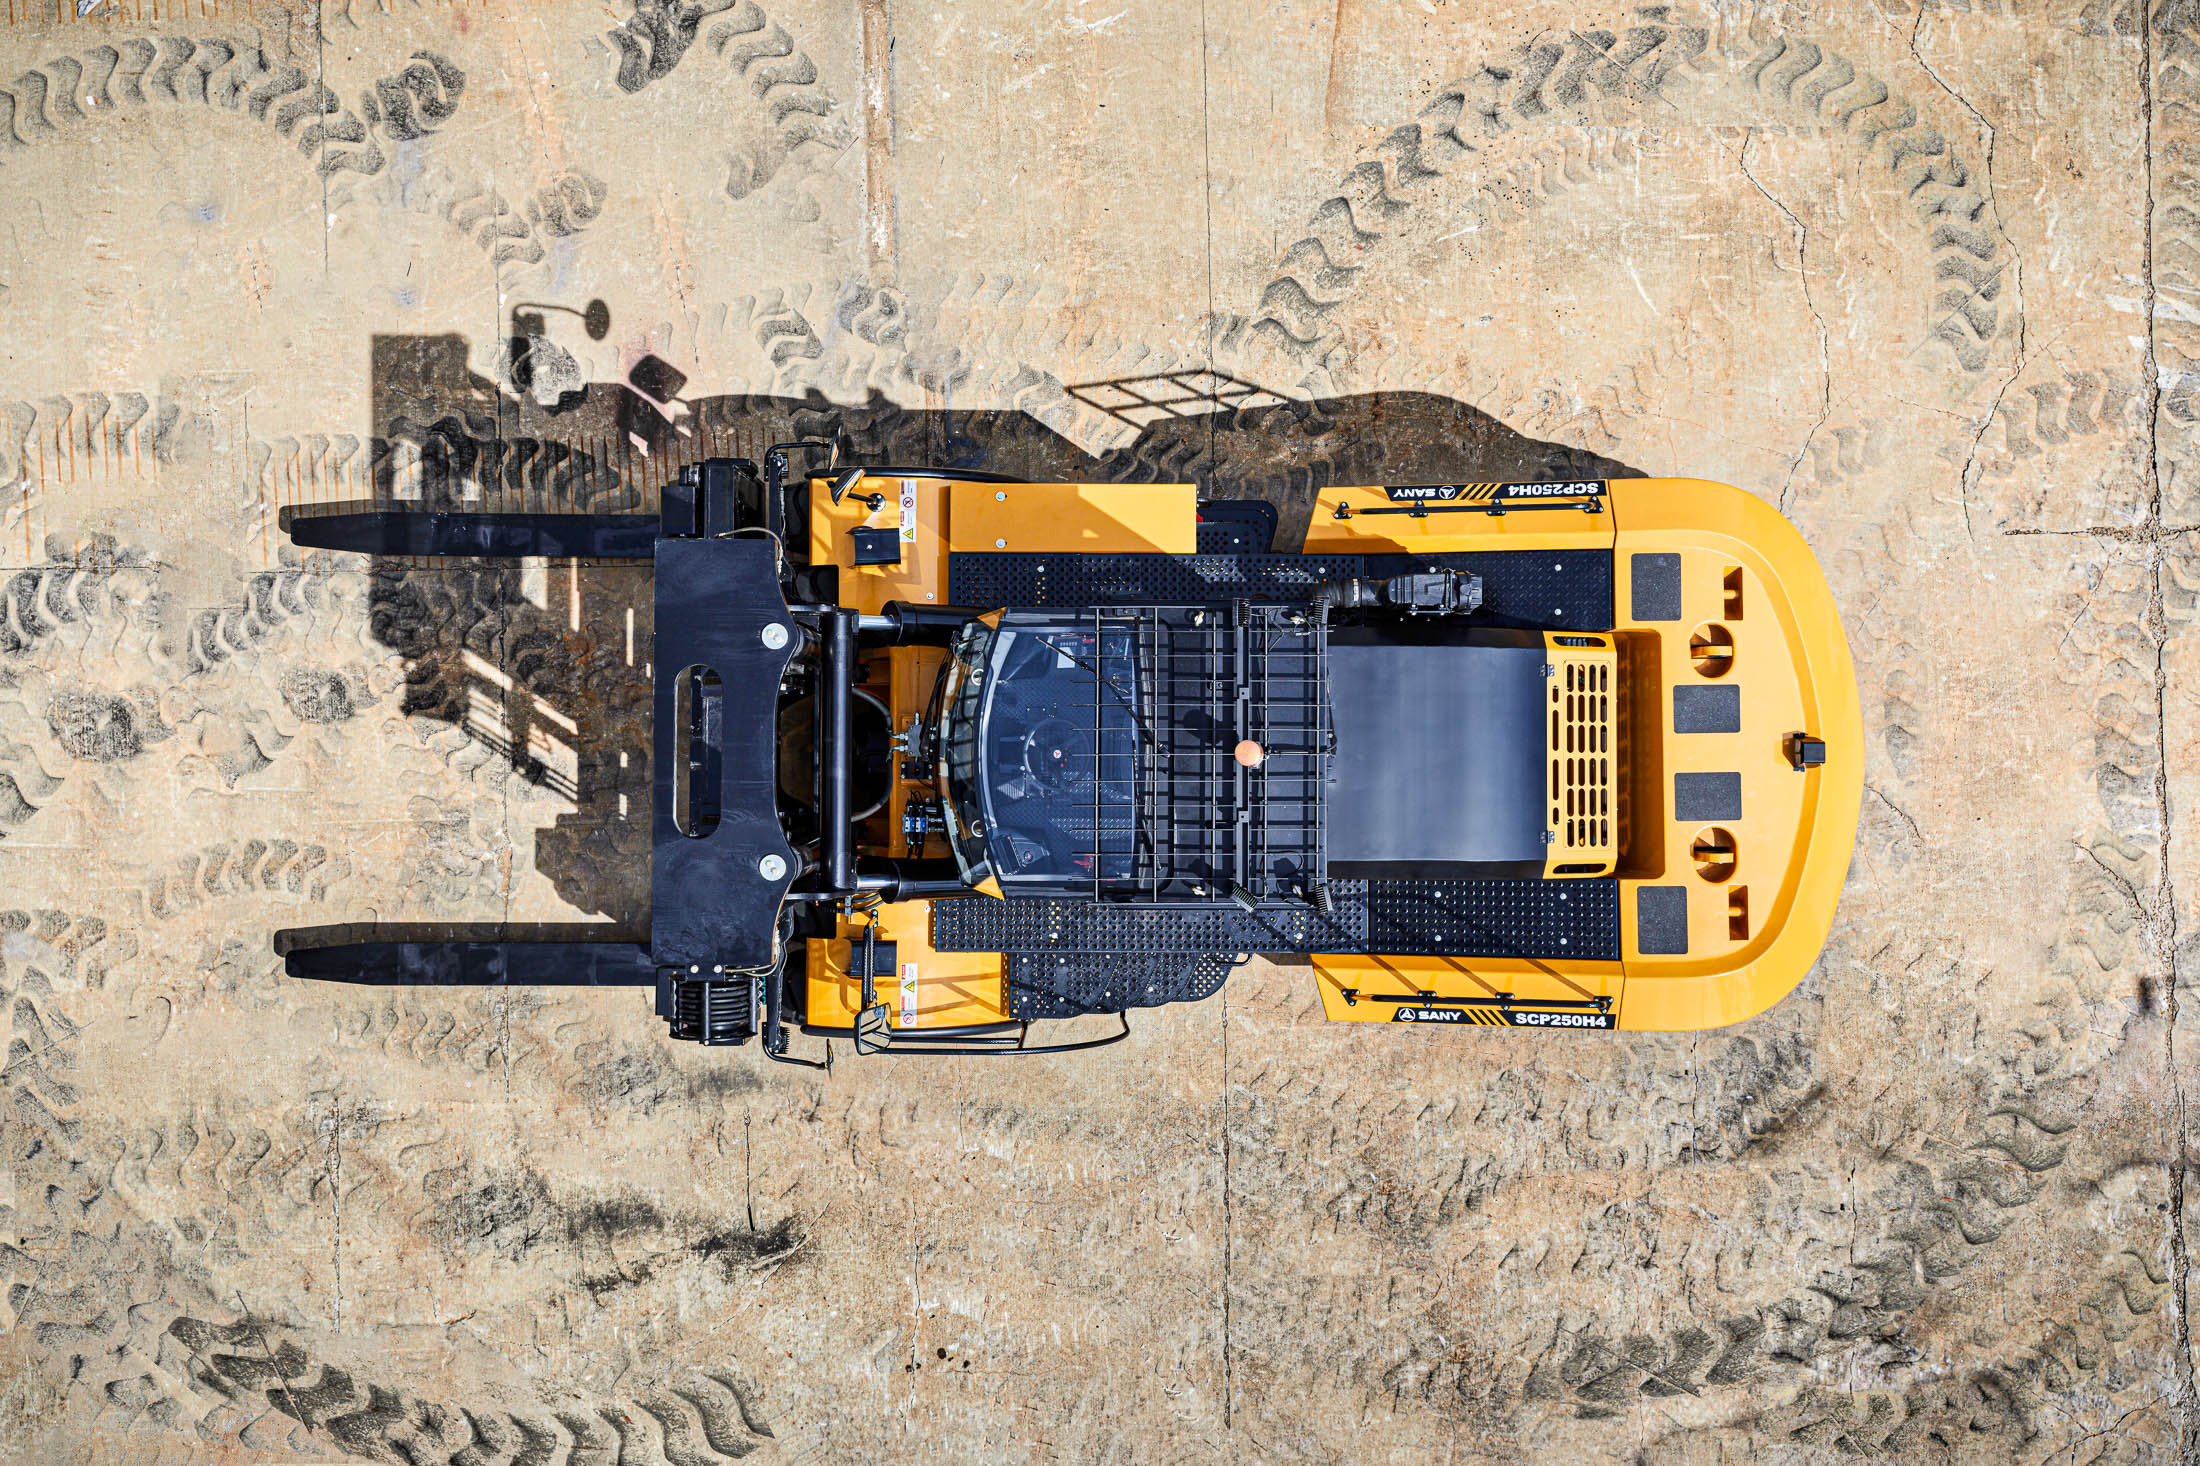 Drone view of Forklift